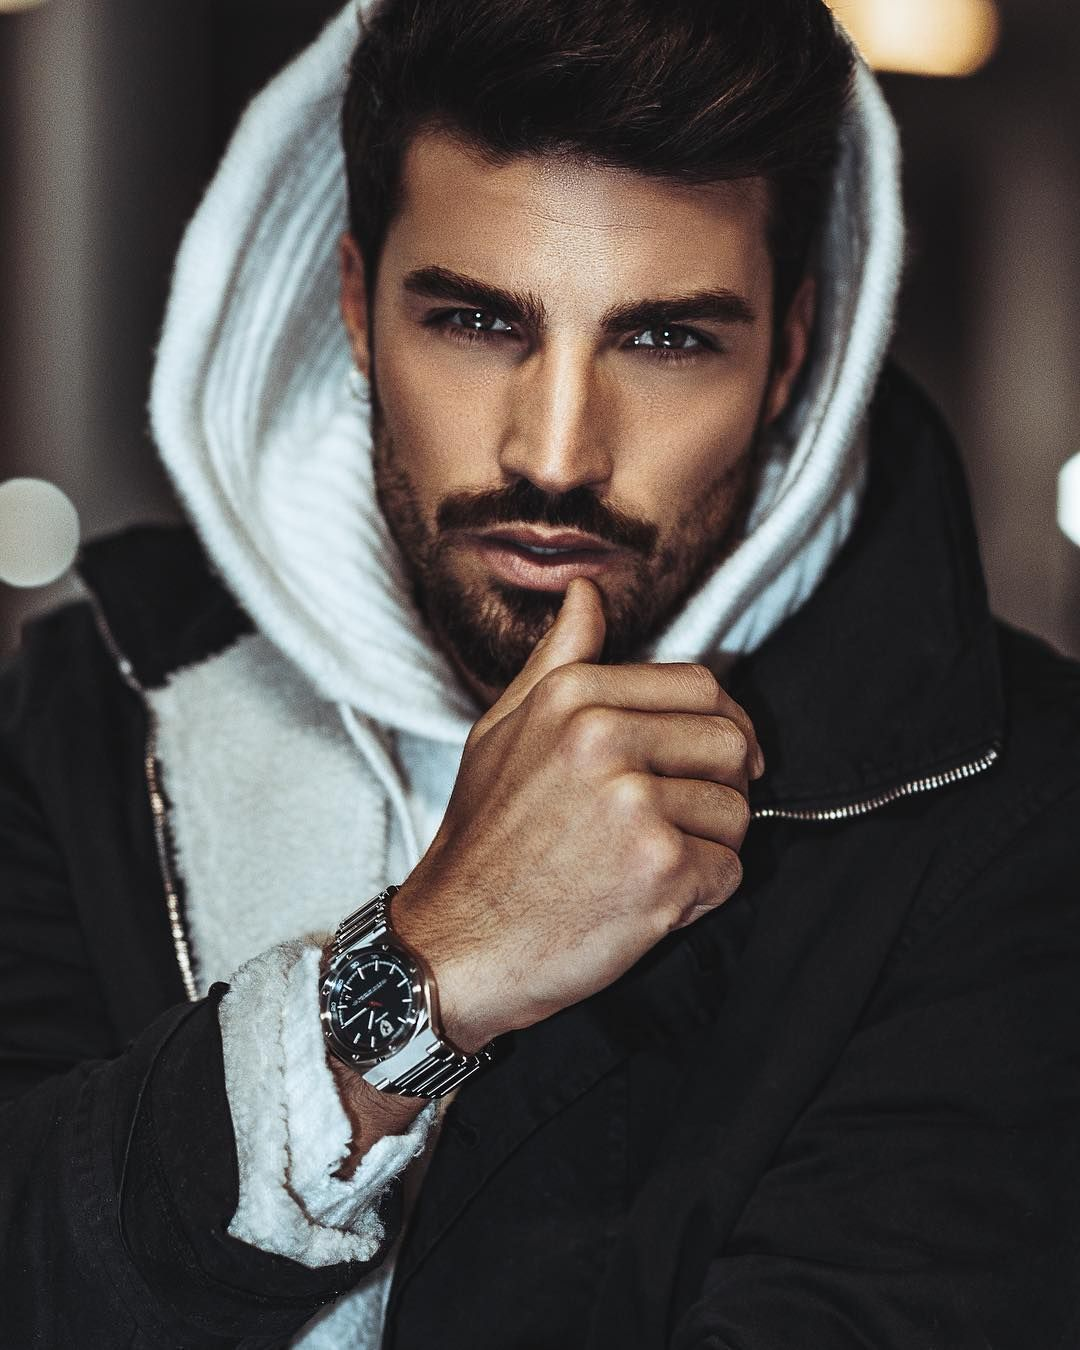 Mariano Di Vaio On Instagram The Two Most Powerful Warriors Are Patience And Time So Many Goals A Beard Styles For Men Beard Styles Different Beard Styles